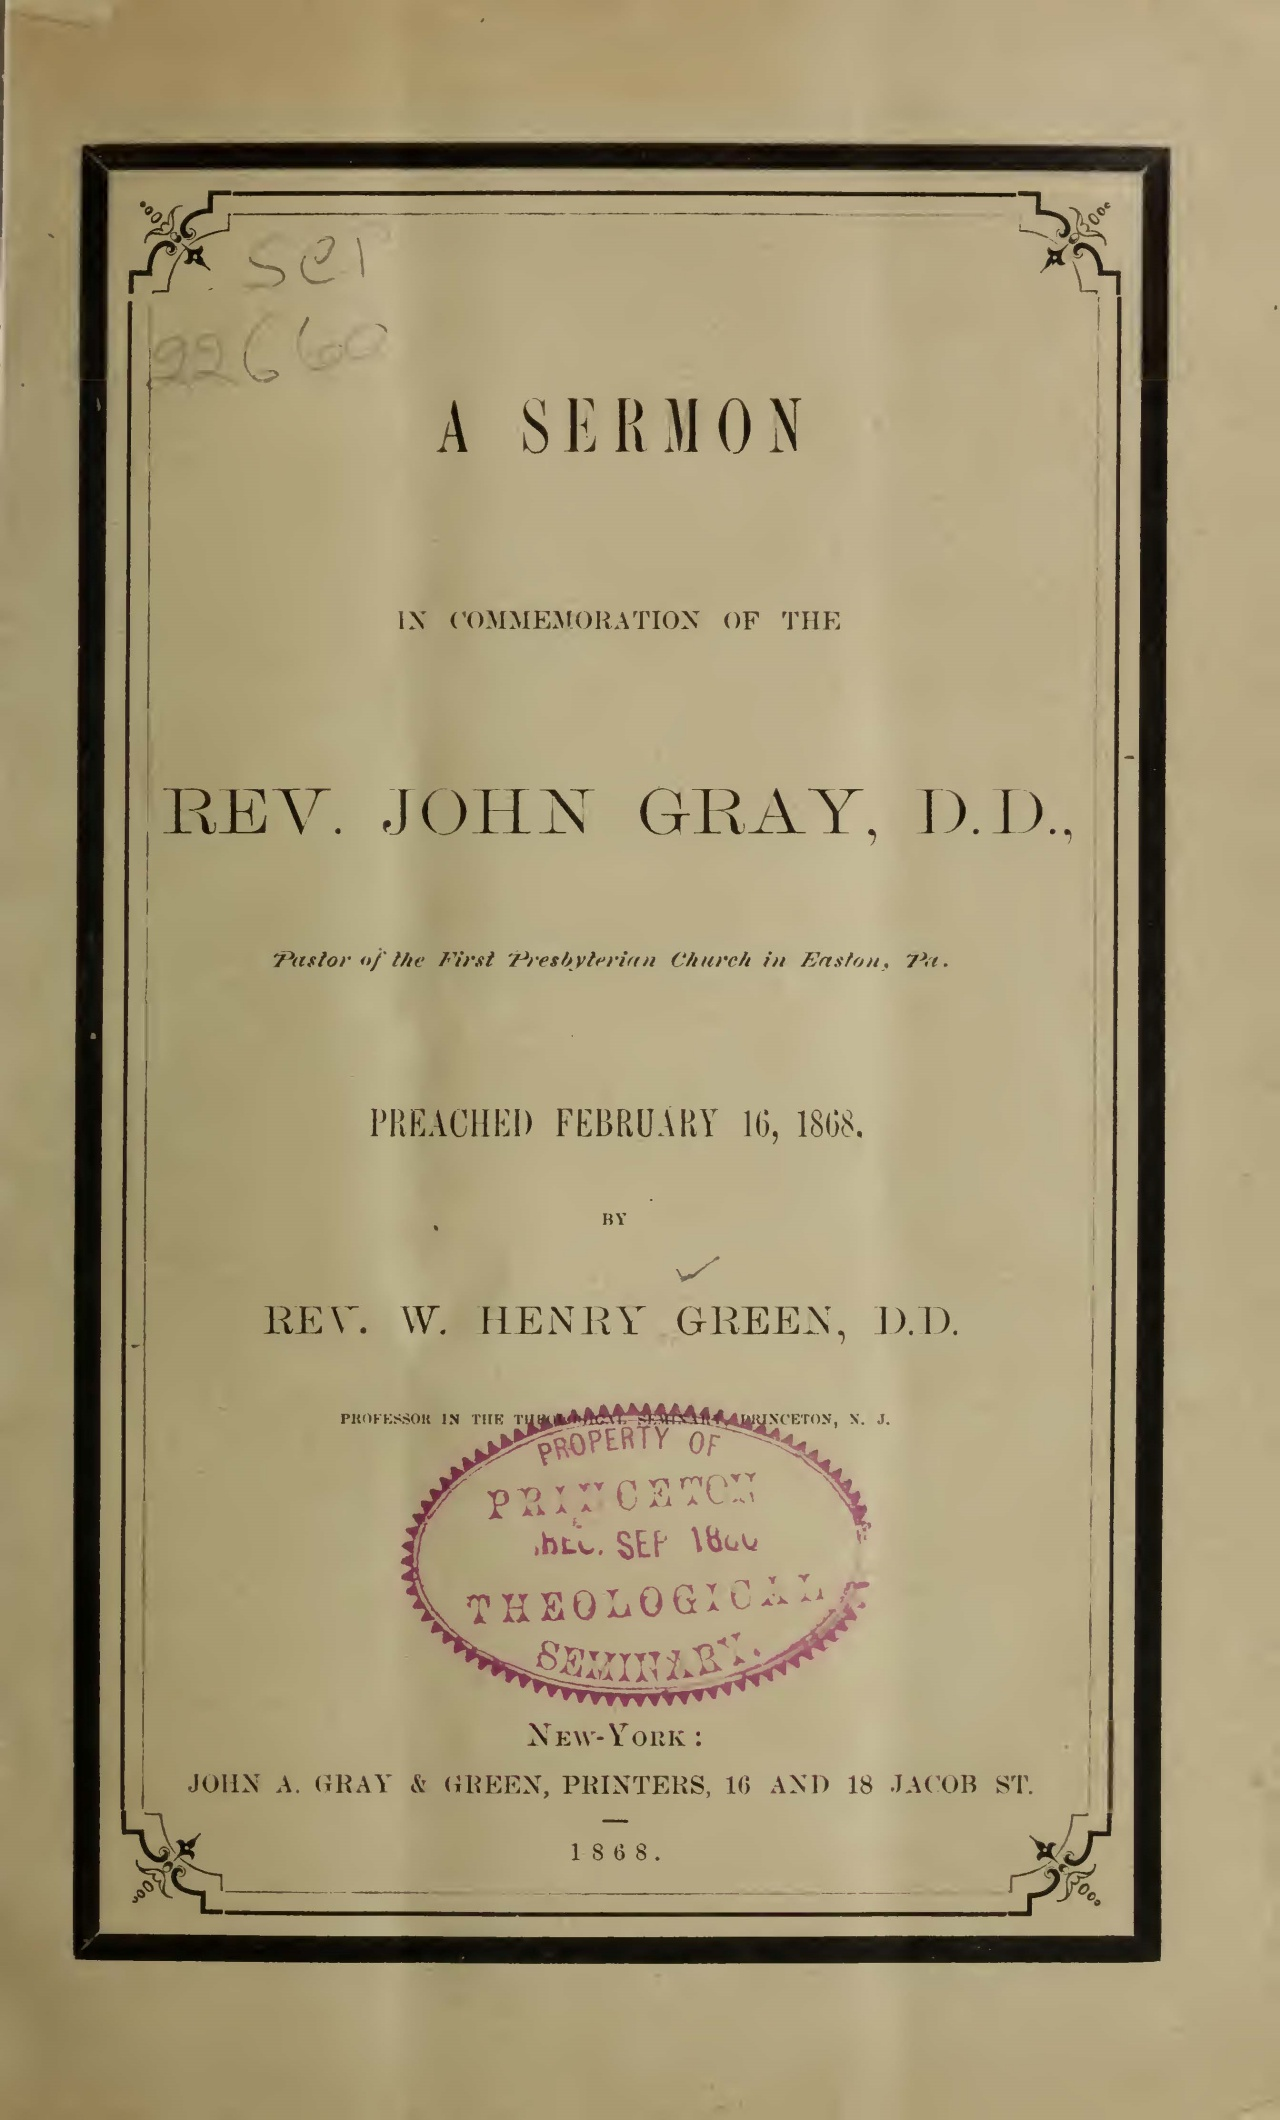 Green, William Henry, A Sermon in Commemoration of the Rev. John Gray Title Page.jpg